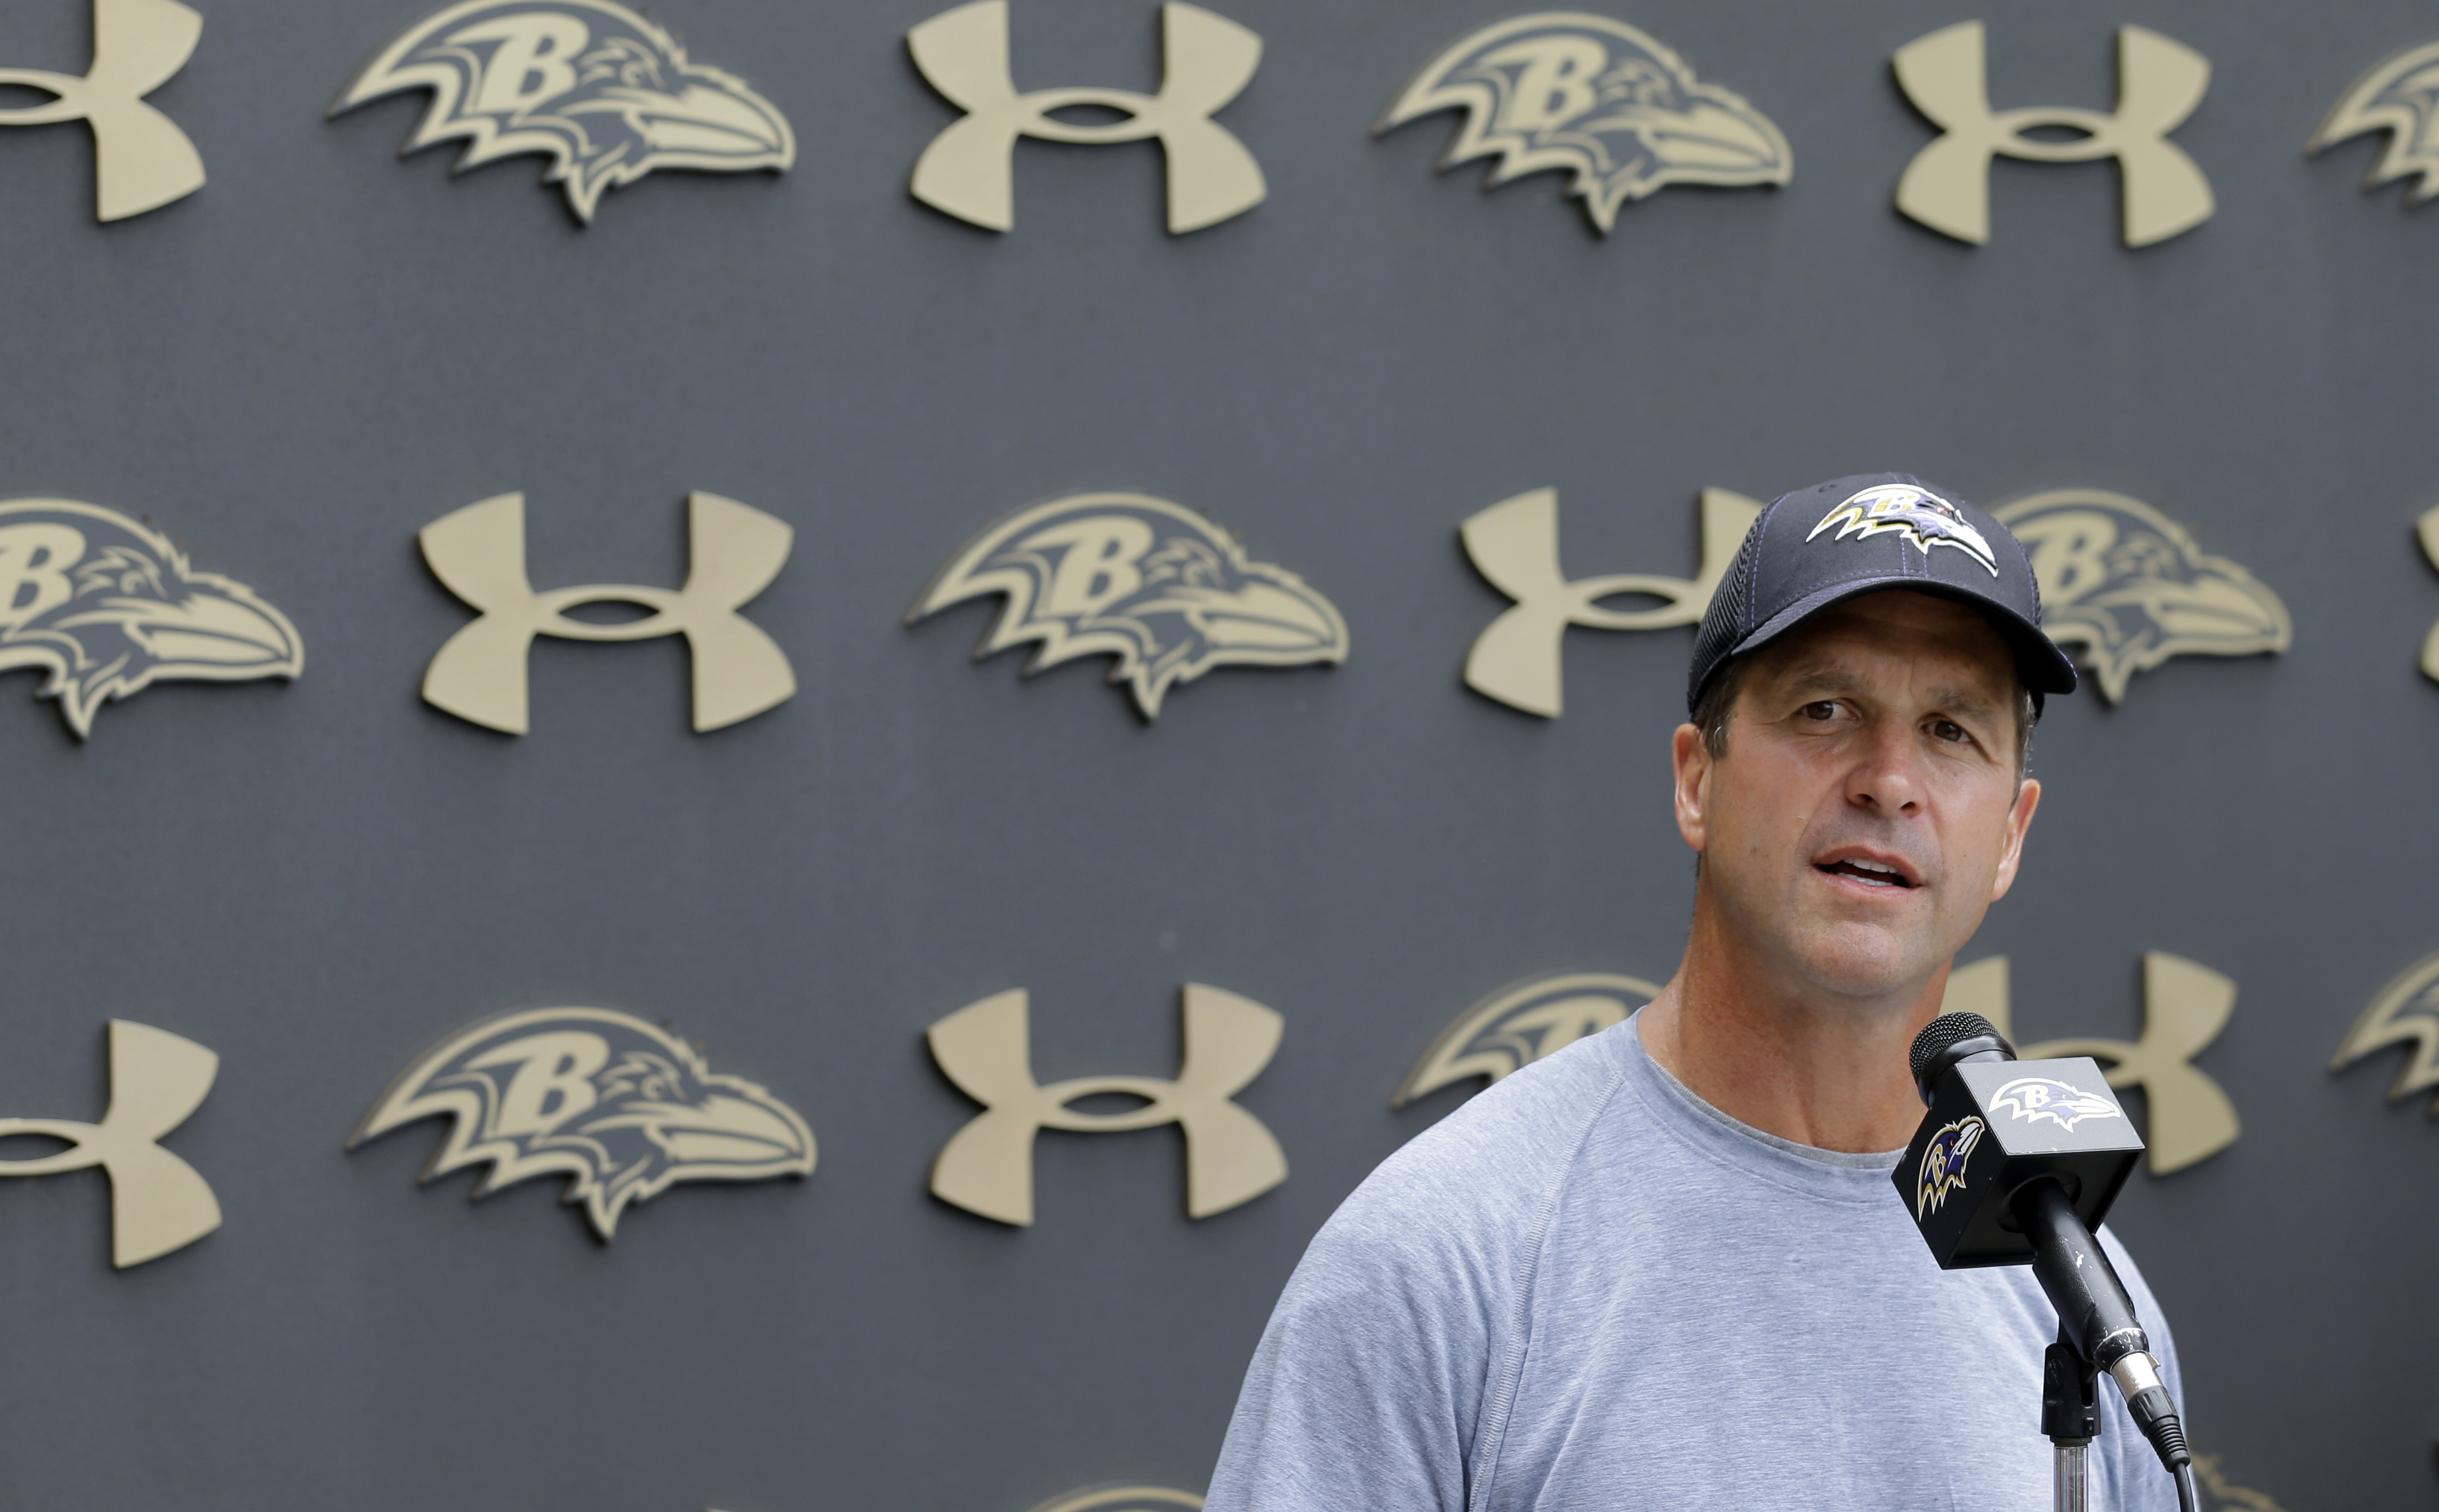 Baltimore Ravens head coach John Harbaugh speaks at a news conference after NFL football minicamp, Thursday, June 18, 2015, in Owings Mills, Md. (AP Photo/Patrick Semansky)